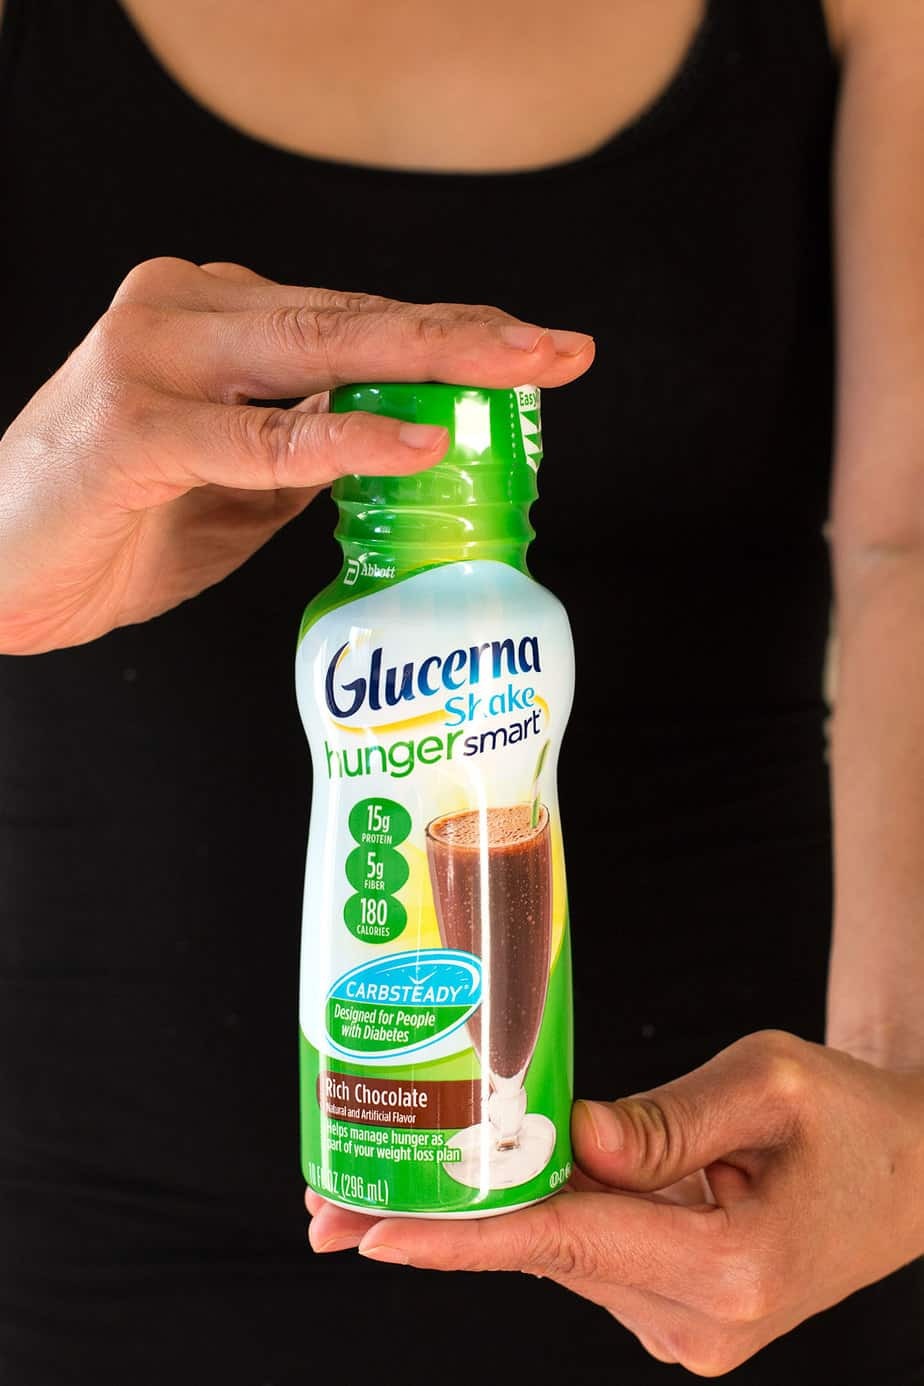 glucerna-shake-hunger-smart